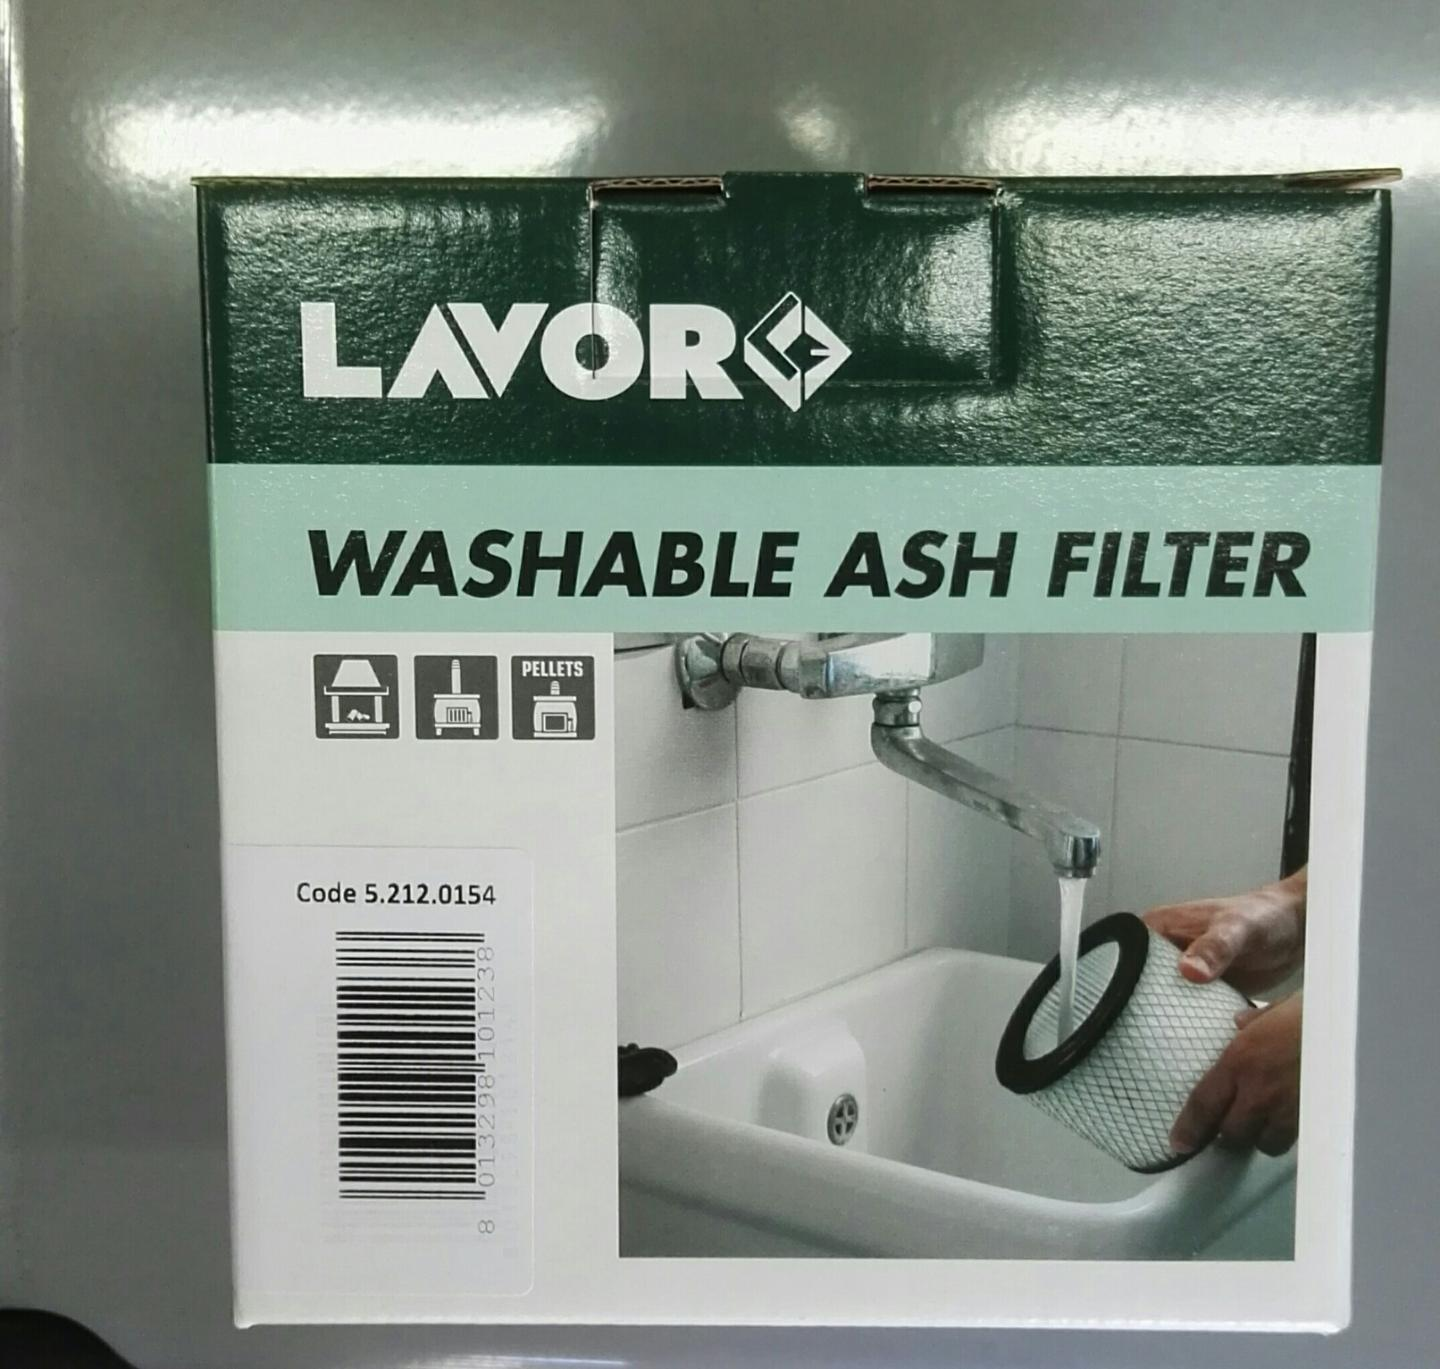 LAVORWASH FILTRO LAVABILE COD 5.212.0154 PER ASPIRACENERE Freddy Ashley Kombo LAVORWASH    cod. 5.212.0154